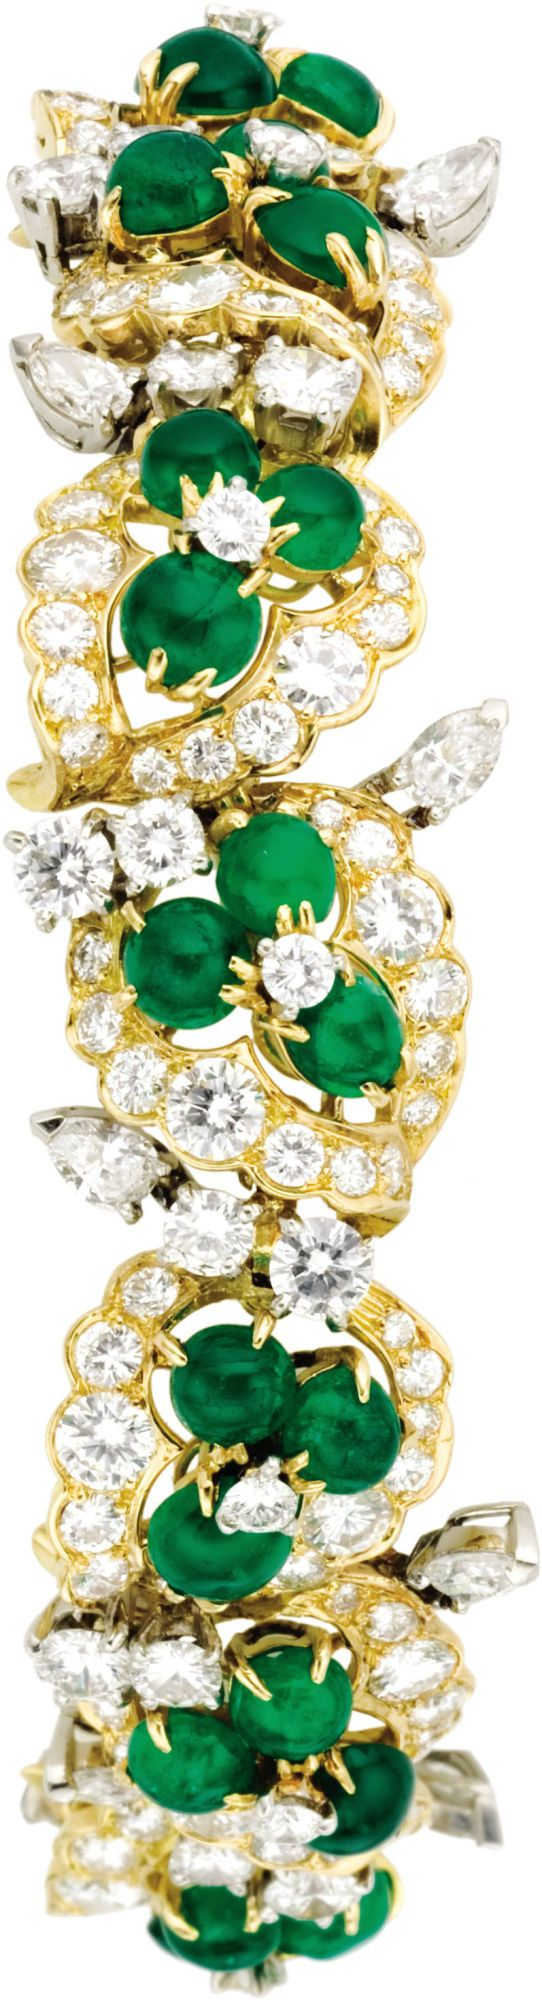 Diamond, Emerald, and Gold Bracelet, French, ht